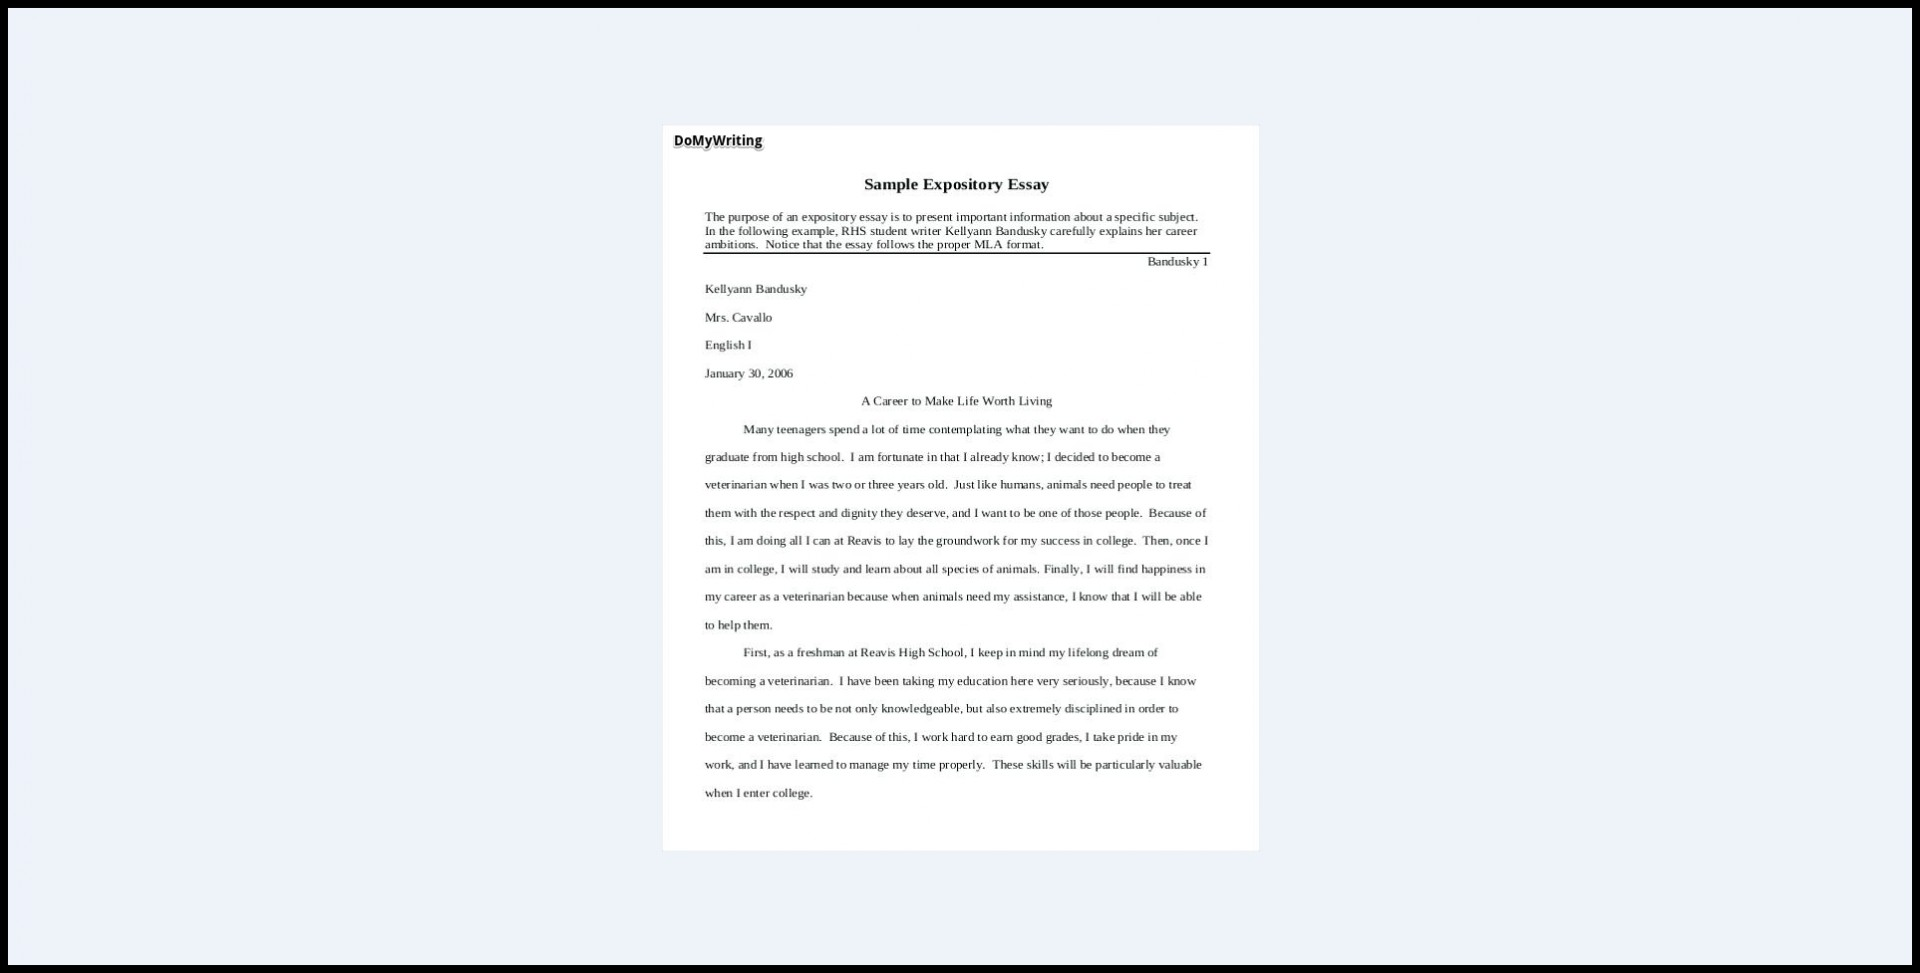 019 Expository Essay Samples Impressive Theme Examples High School For 7th Grade 1920